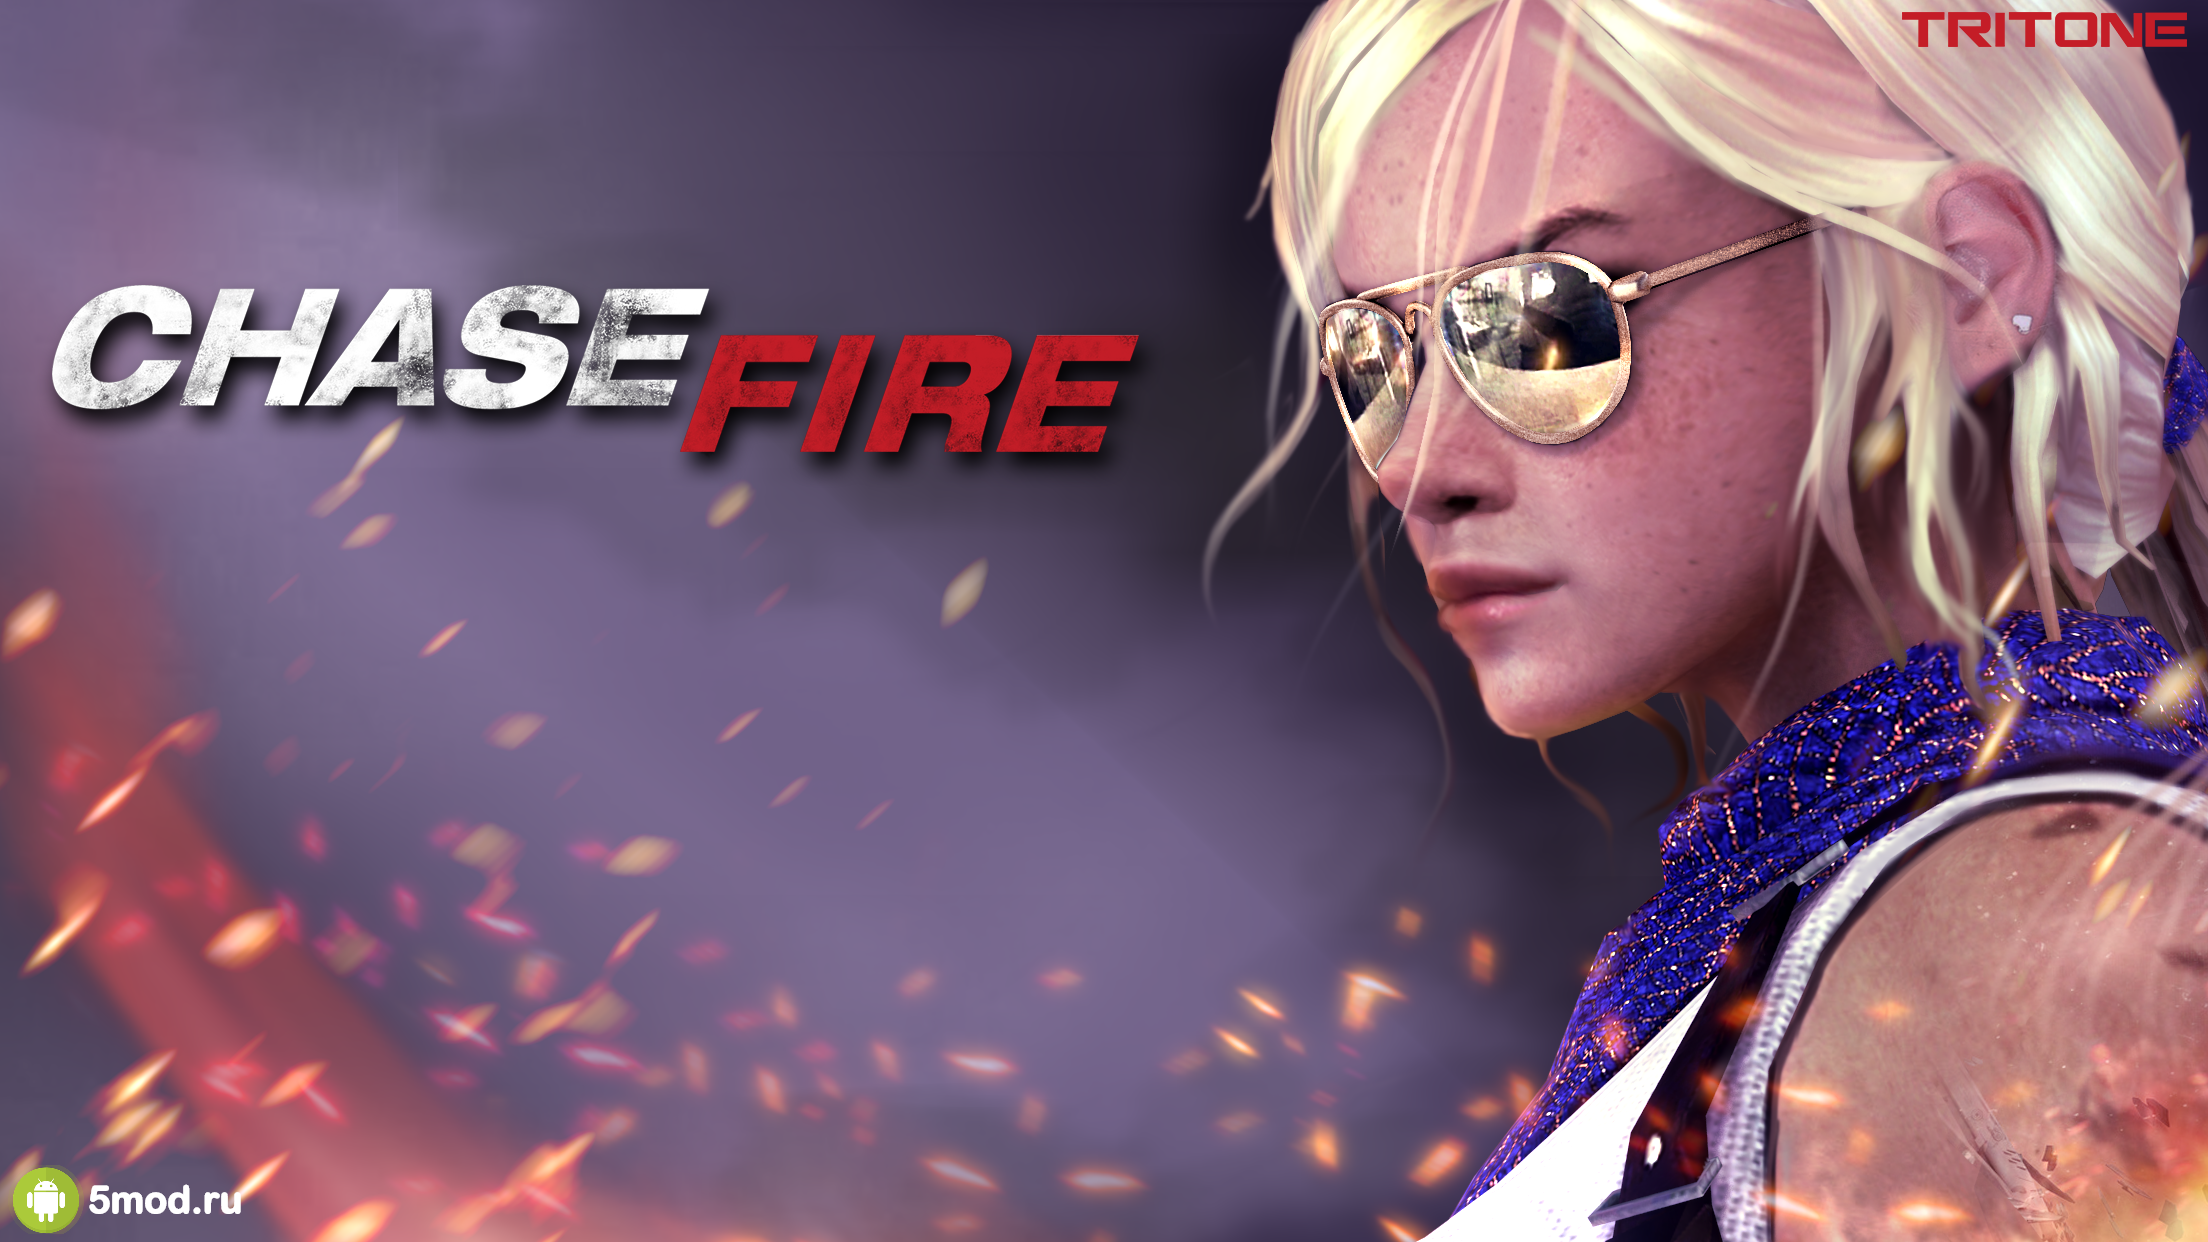 CHASE FIRE